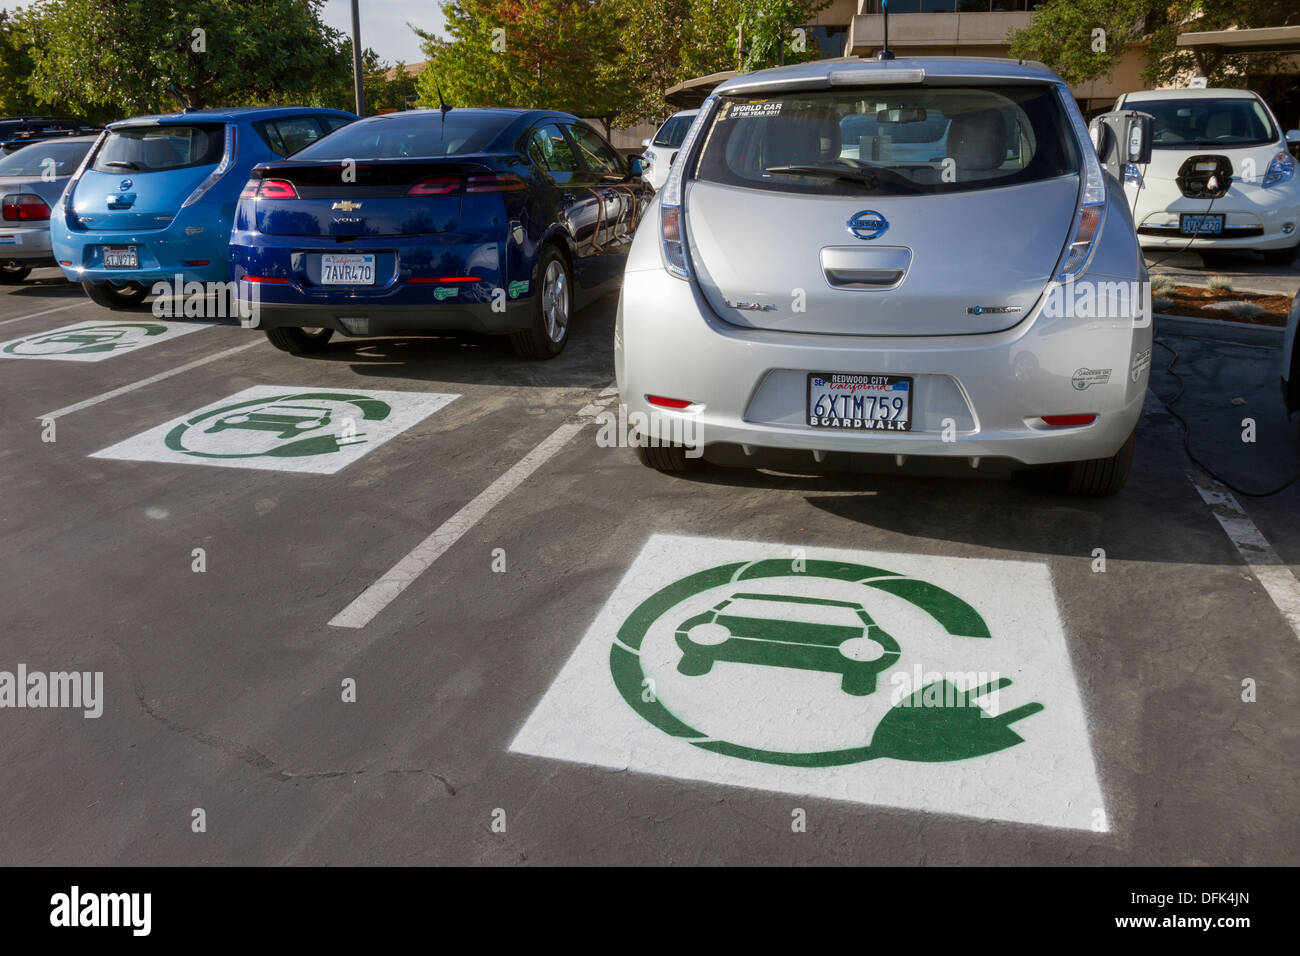 Electric Car Symbol Stockfotos & Electric Car Symbol Bilder - Alamy